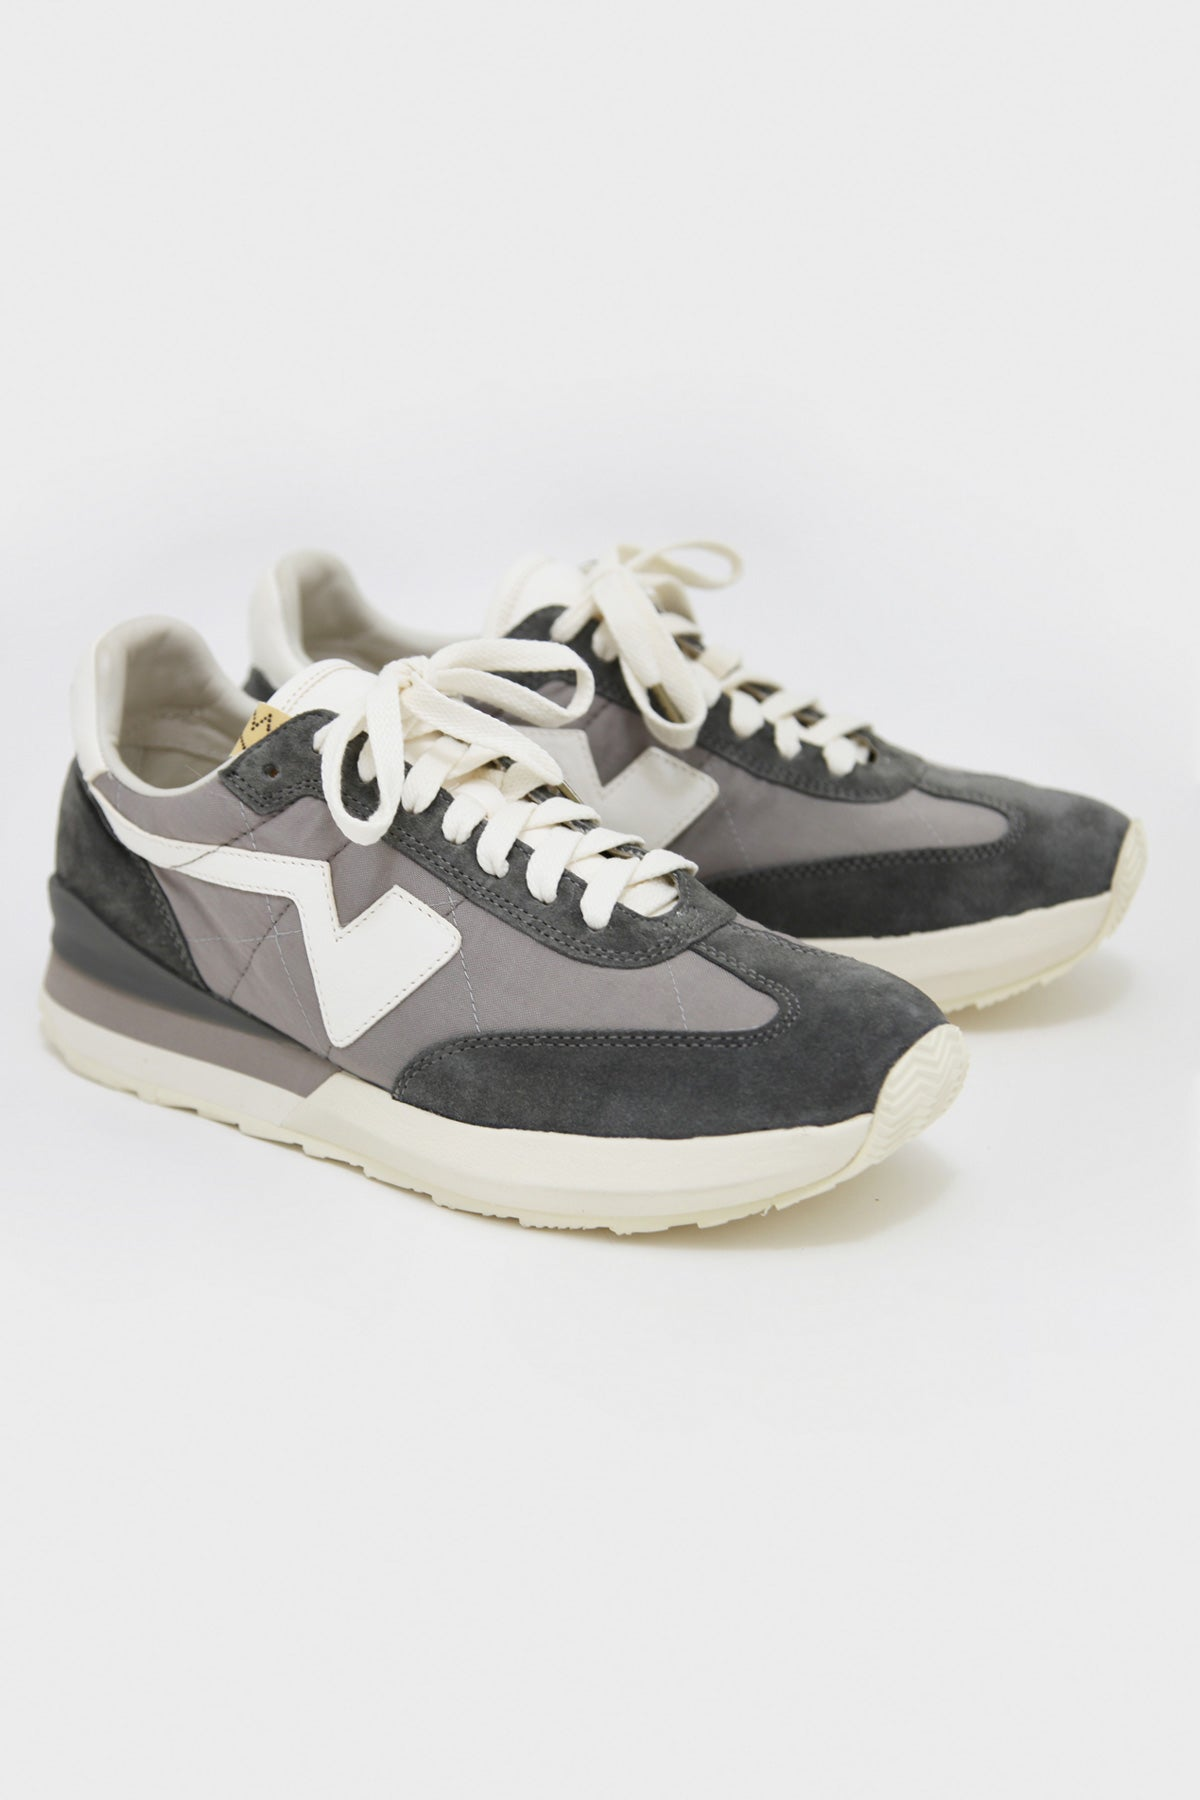 Visvim - FKT Runner - Grey - Canoe Club